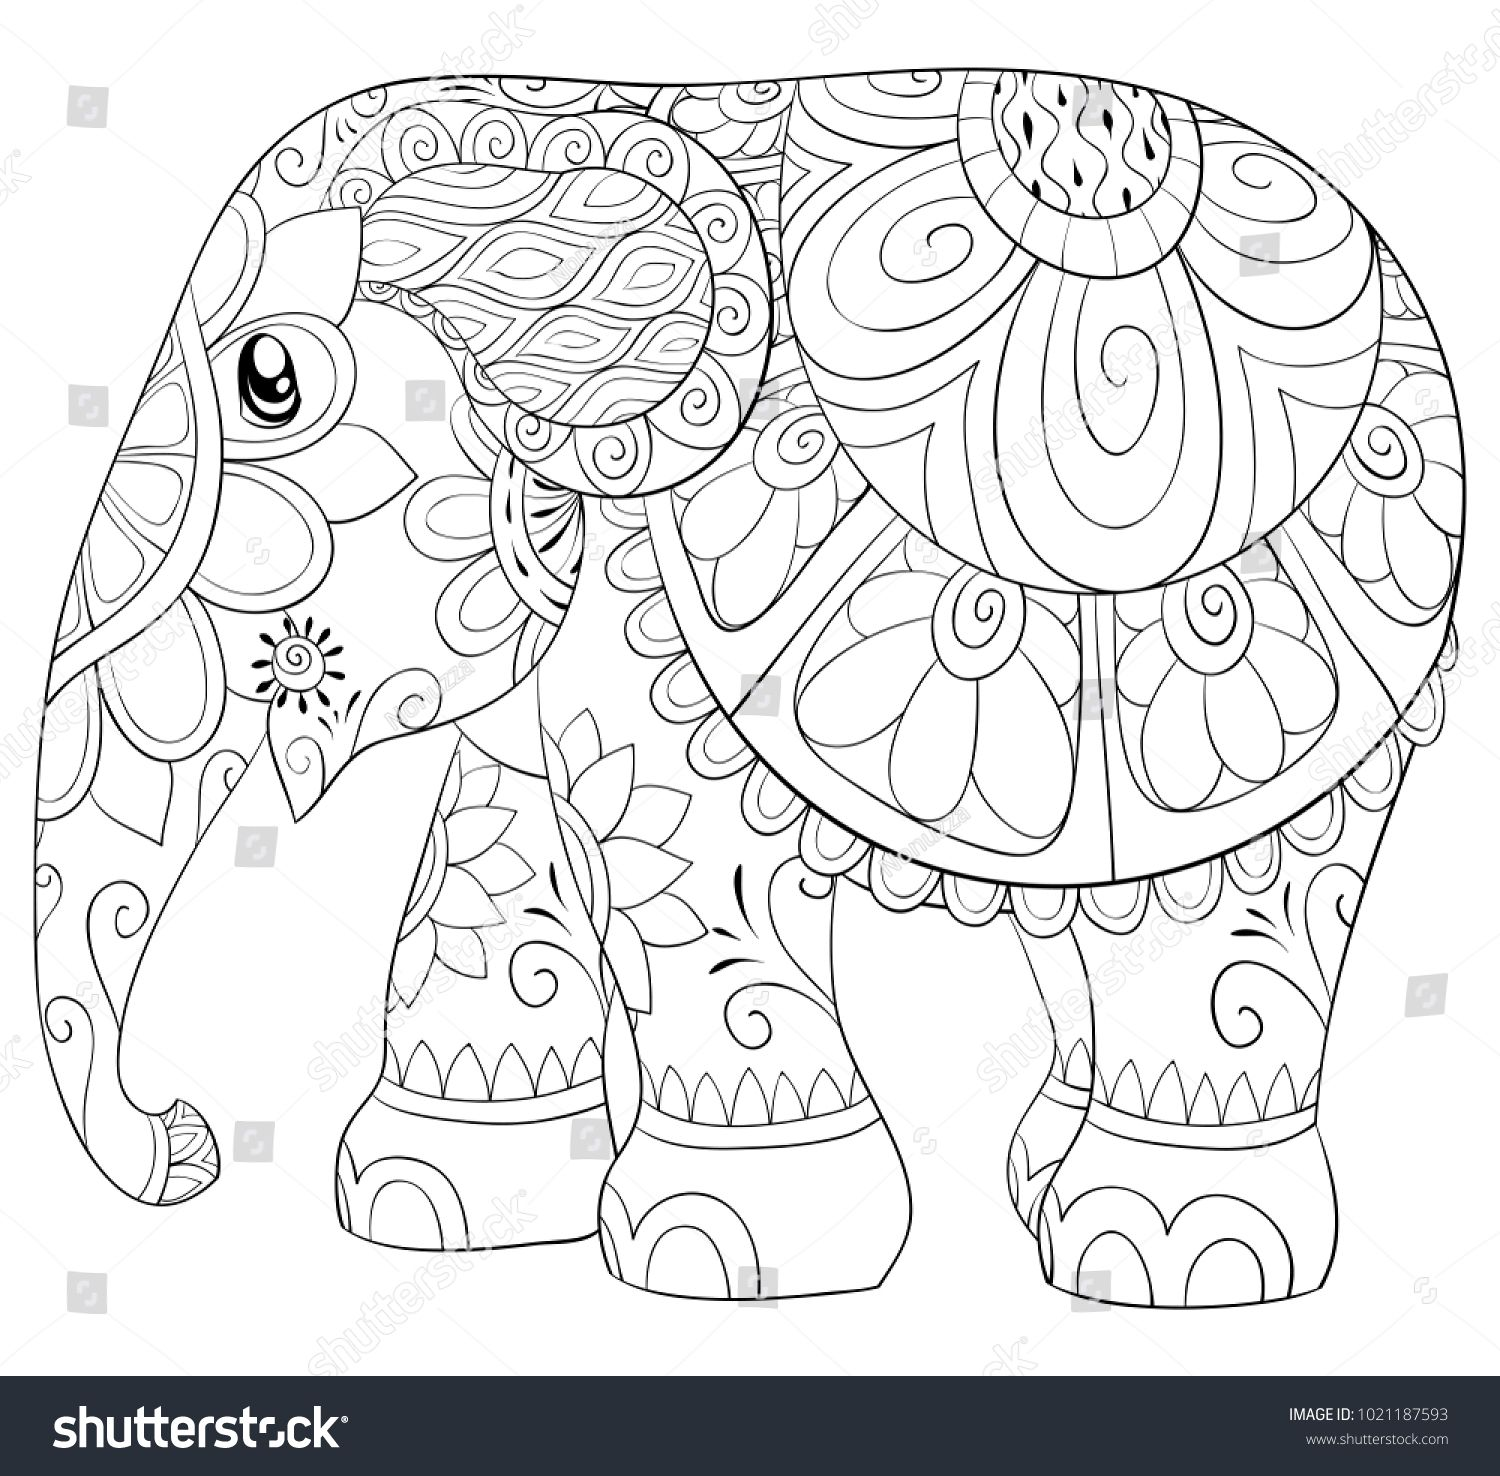 Adult Coloring Page Book A Cute Elephant For Relaxing Zen Art